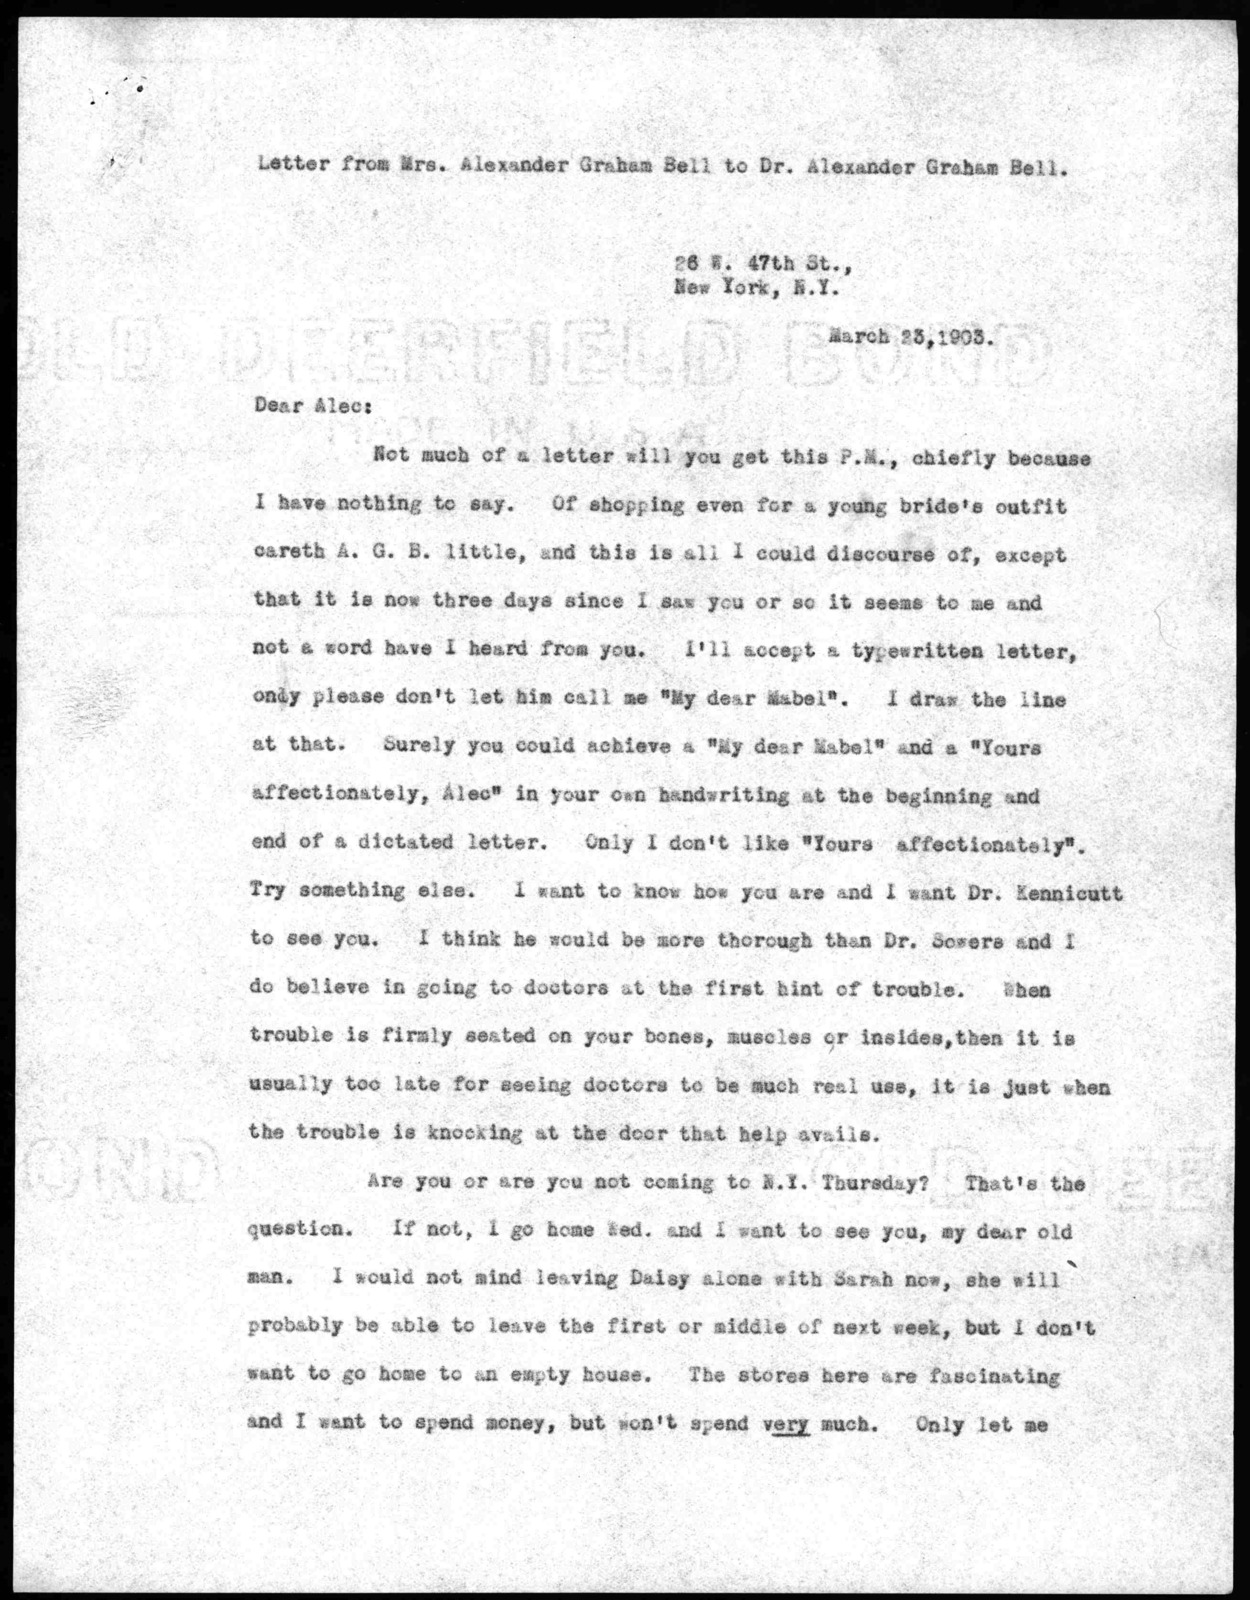 Letter from Mabel Hubbard Bell to Alexander Graham Bell, March 23, 1903